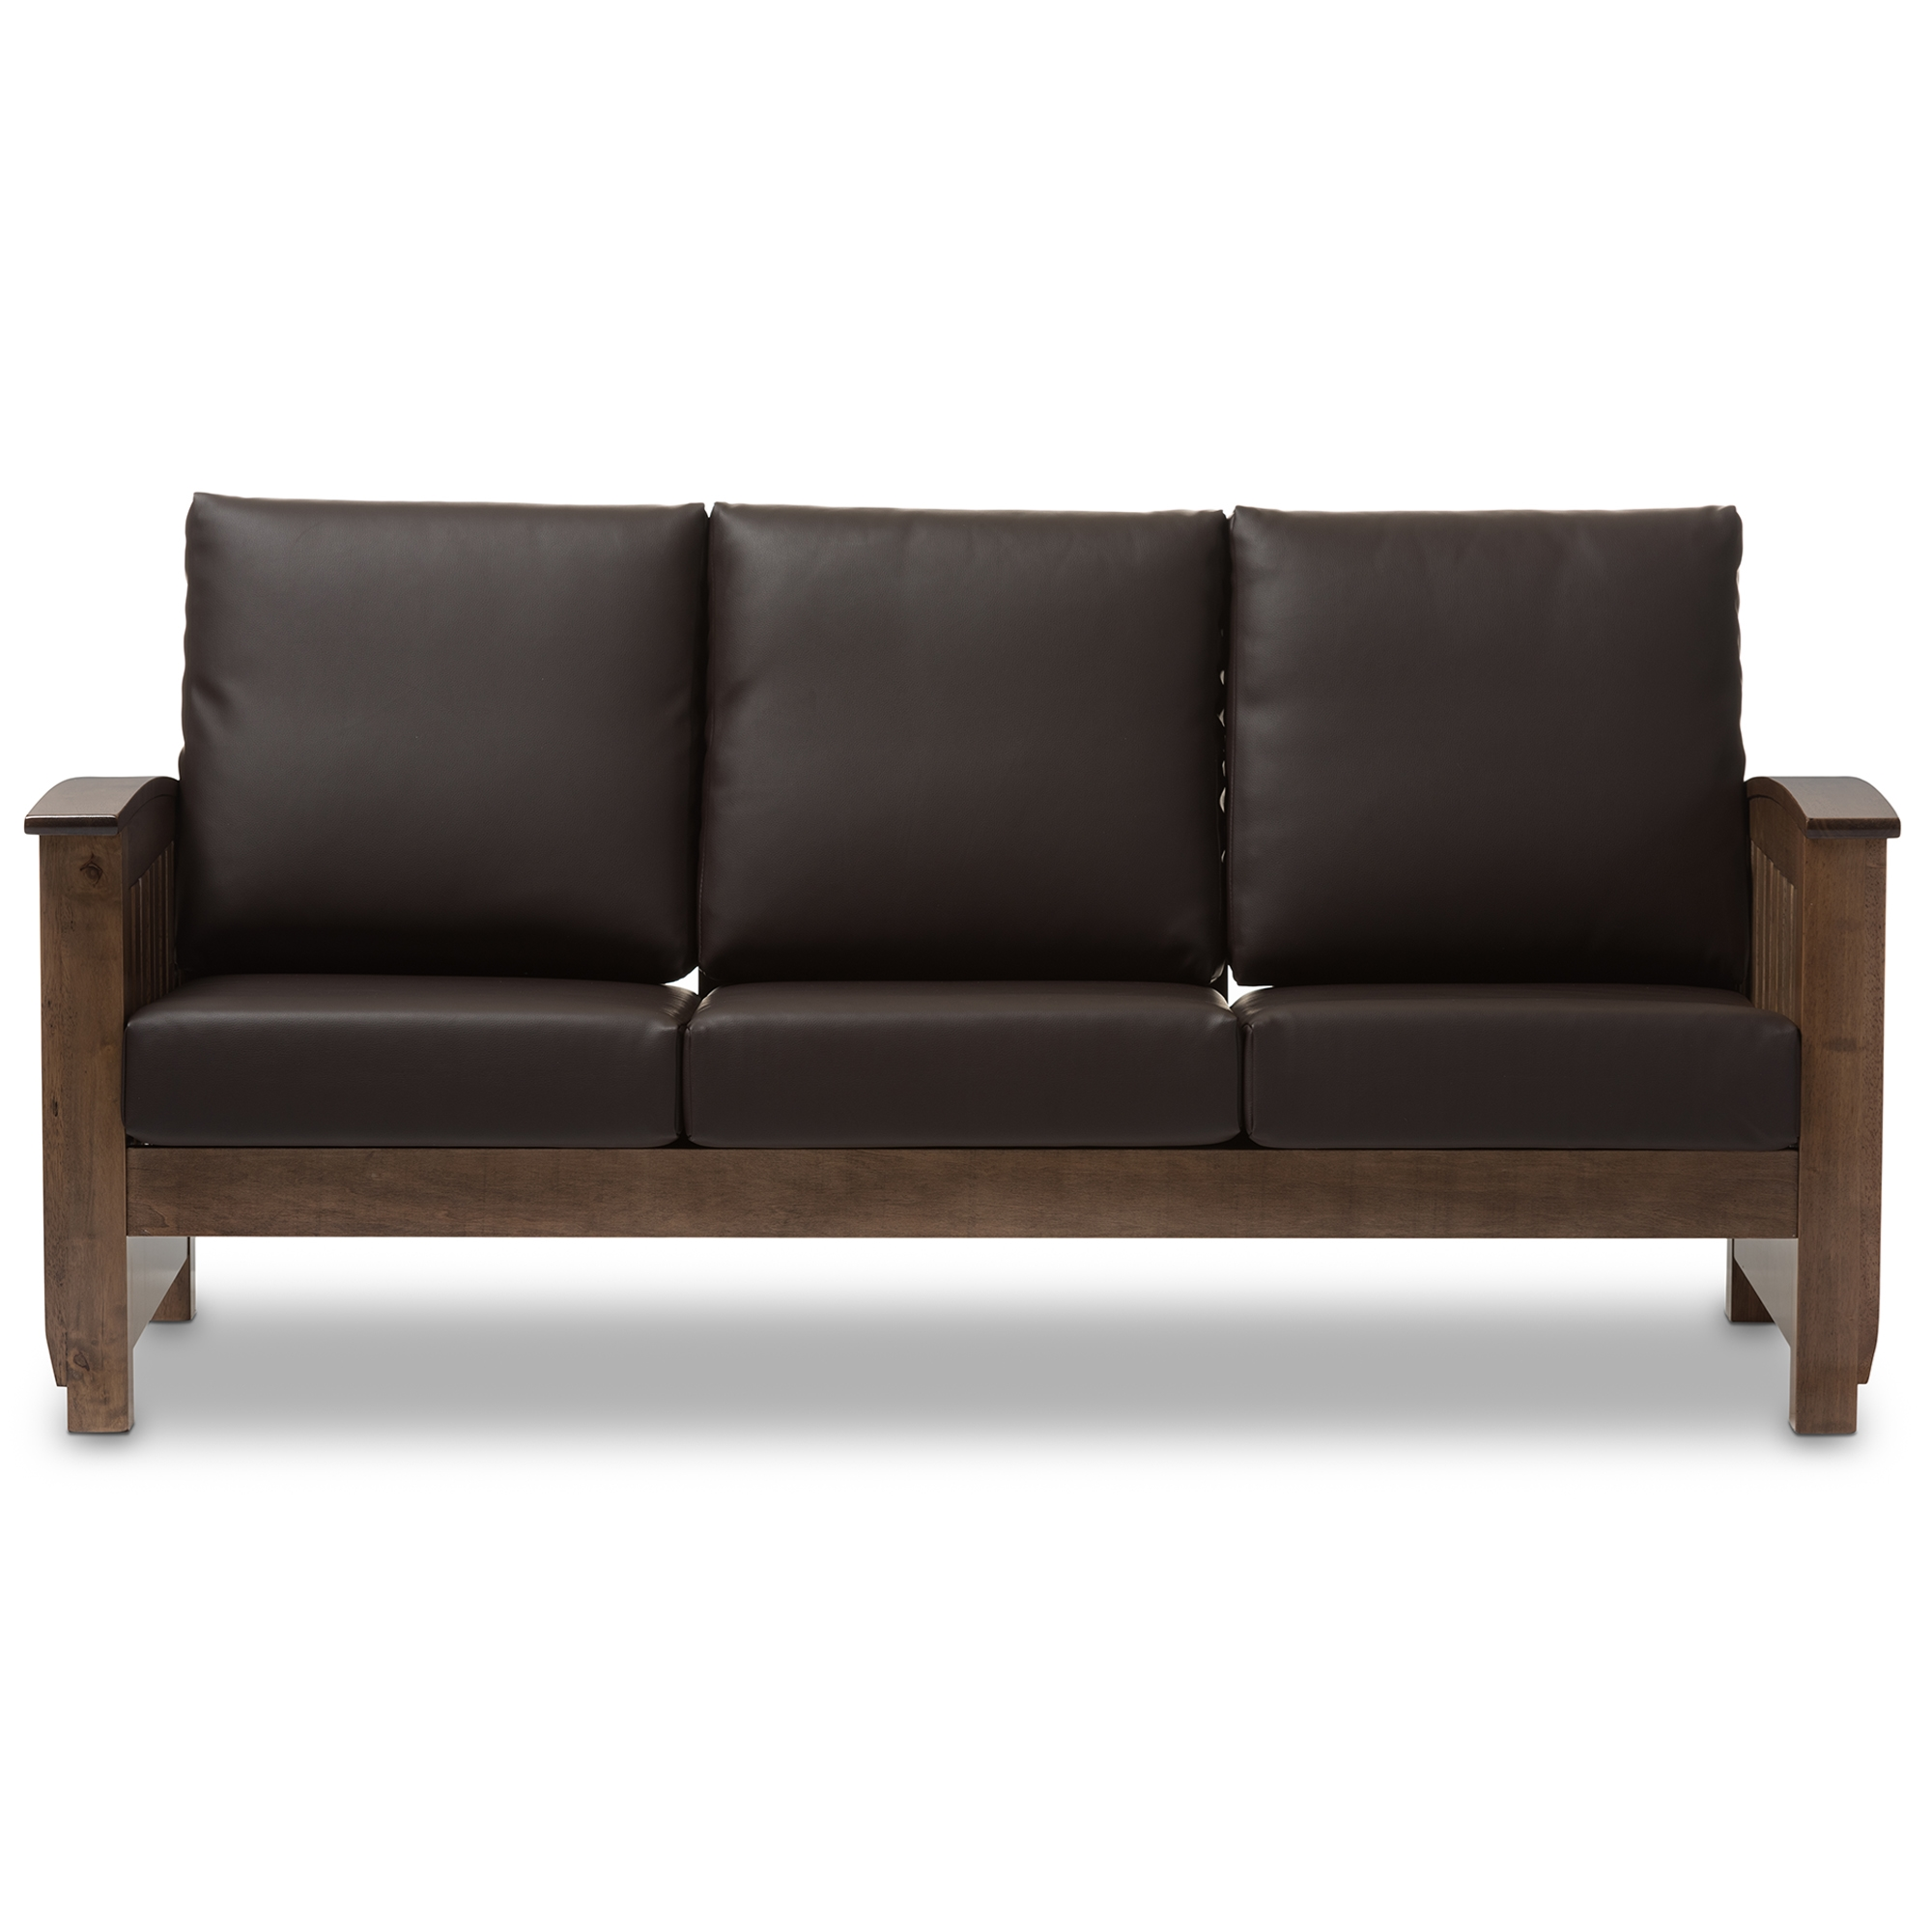 Baxton Studio Charlotte Modern Classic Mission Style Walnut Brown Wood And  Dark Brown Faux Leather 3 Seater Sofa